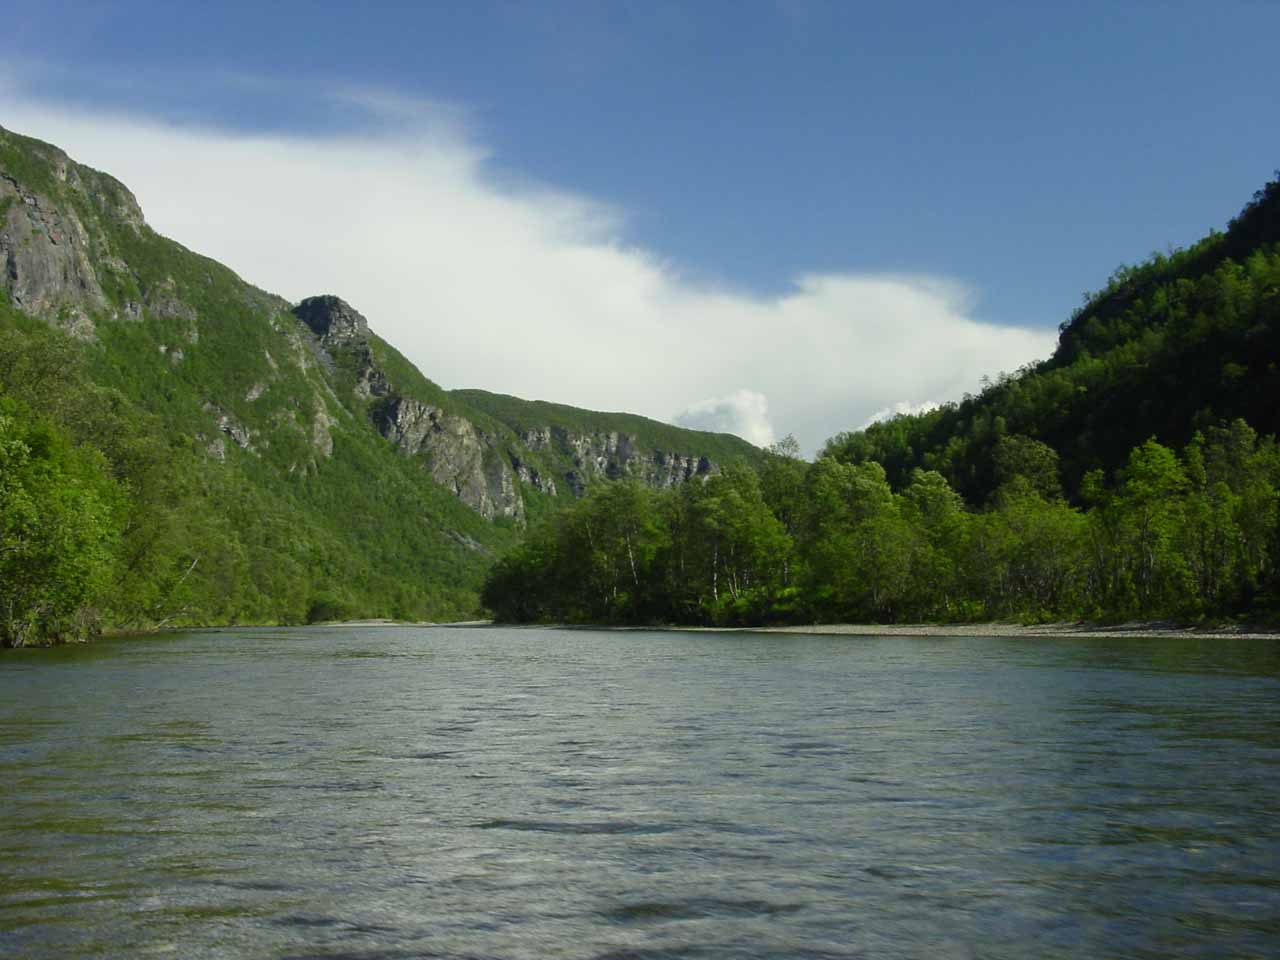 The valley walls started to close in the further upstream we went on the Reisaelva River